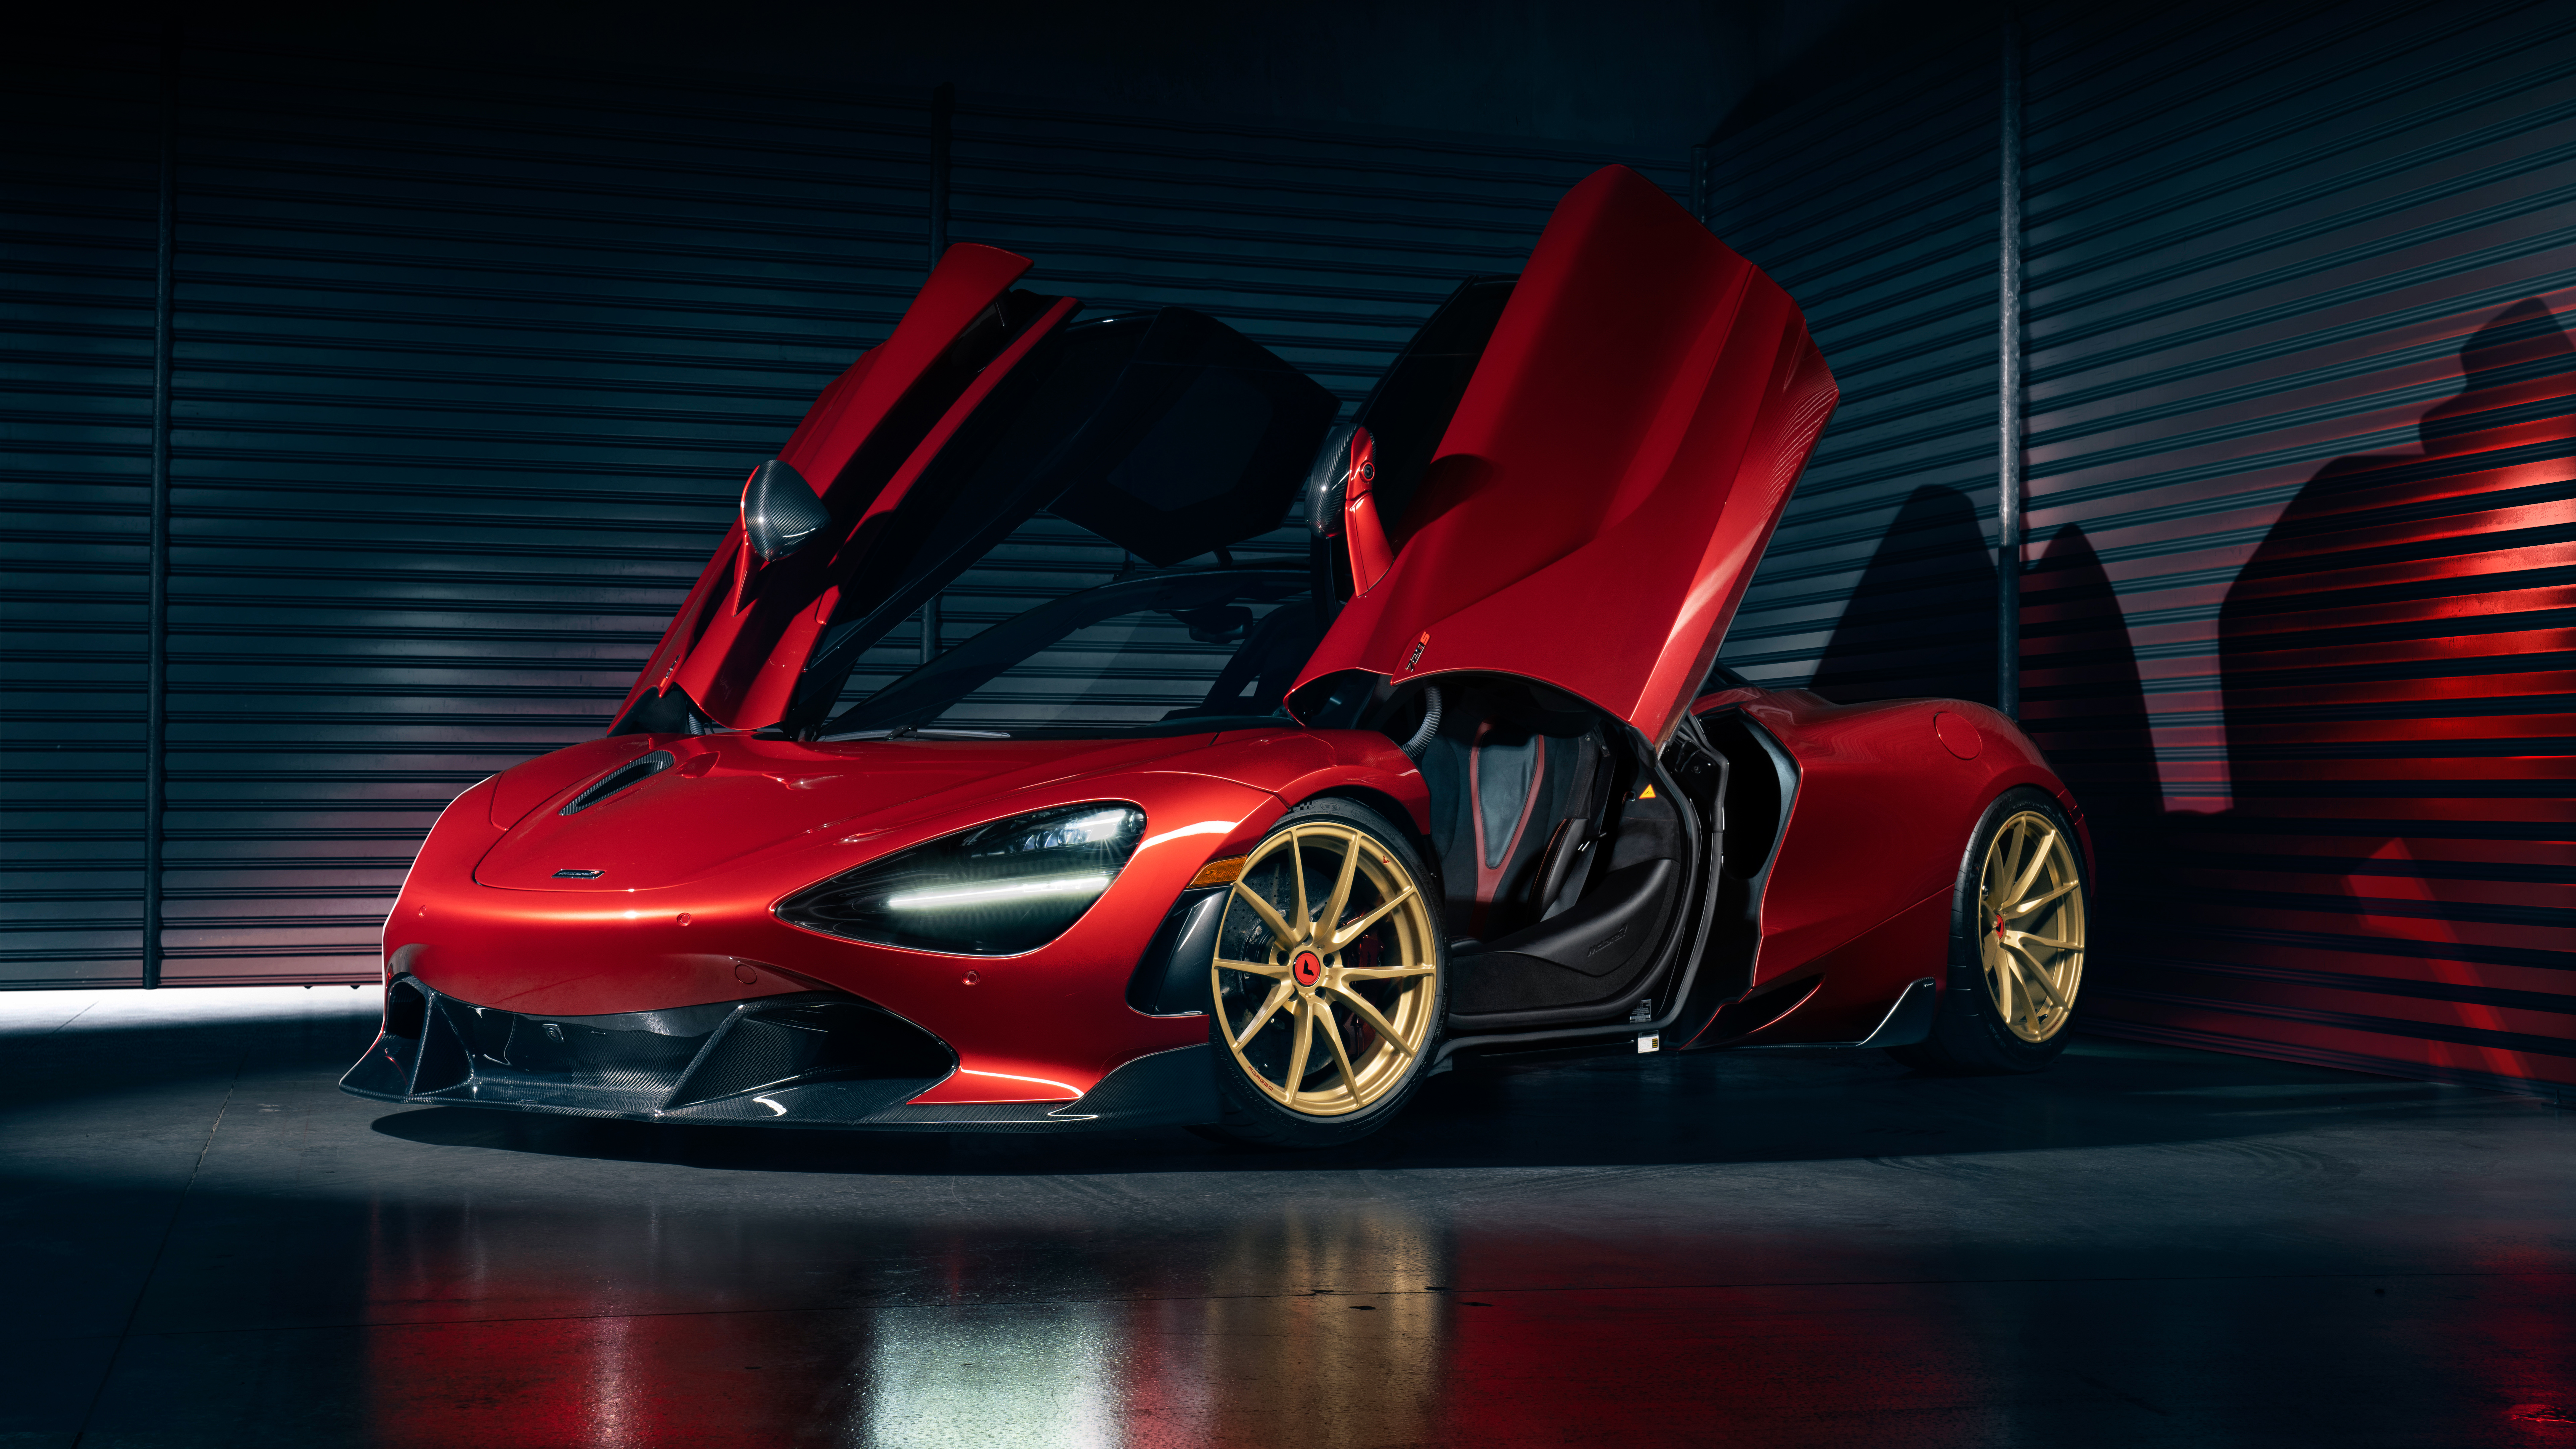 McLaren 720S McLaren Car Supercars Red Cars Spotlights Vorsteiner Low Light British Cars Scissor Doo 7680x4320